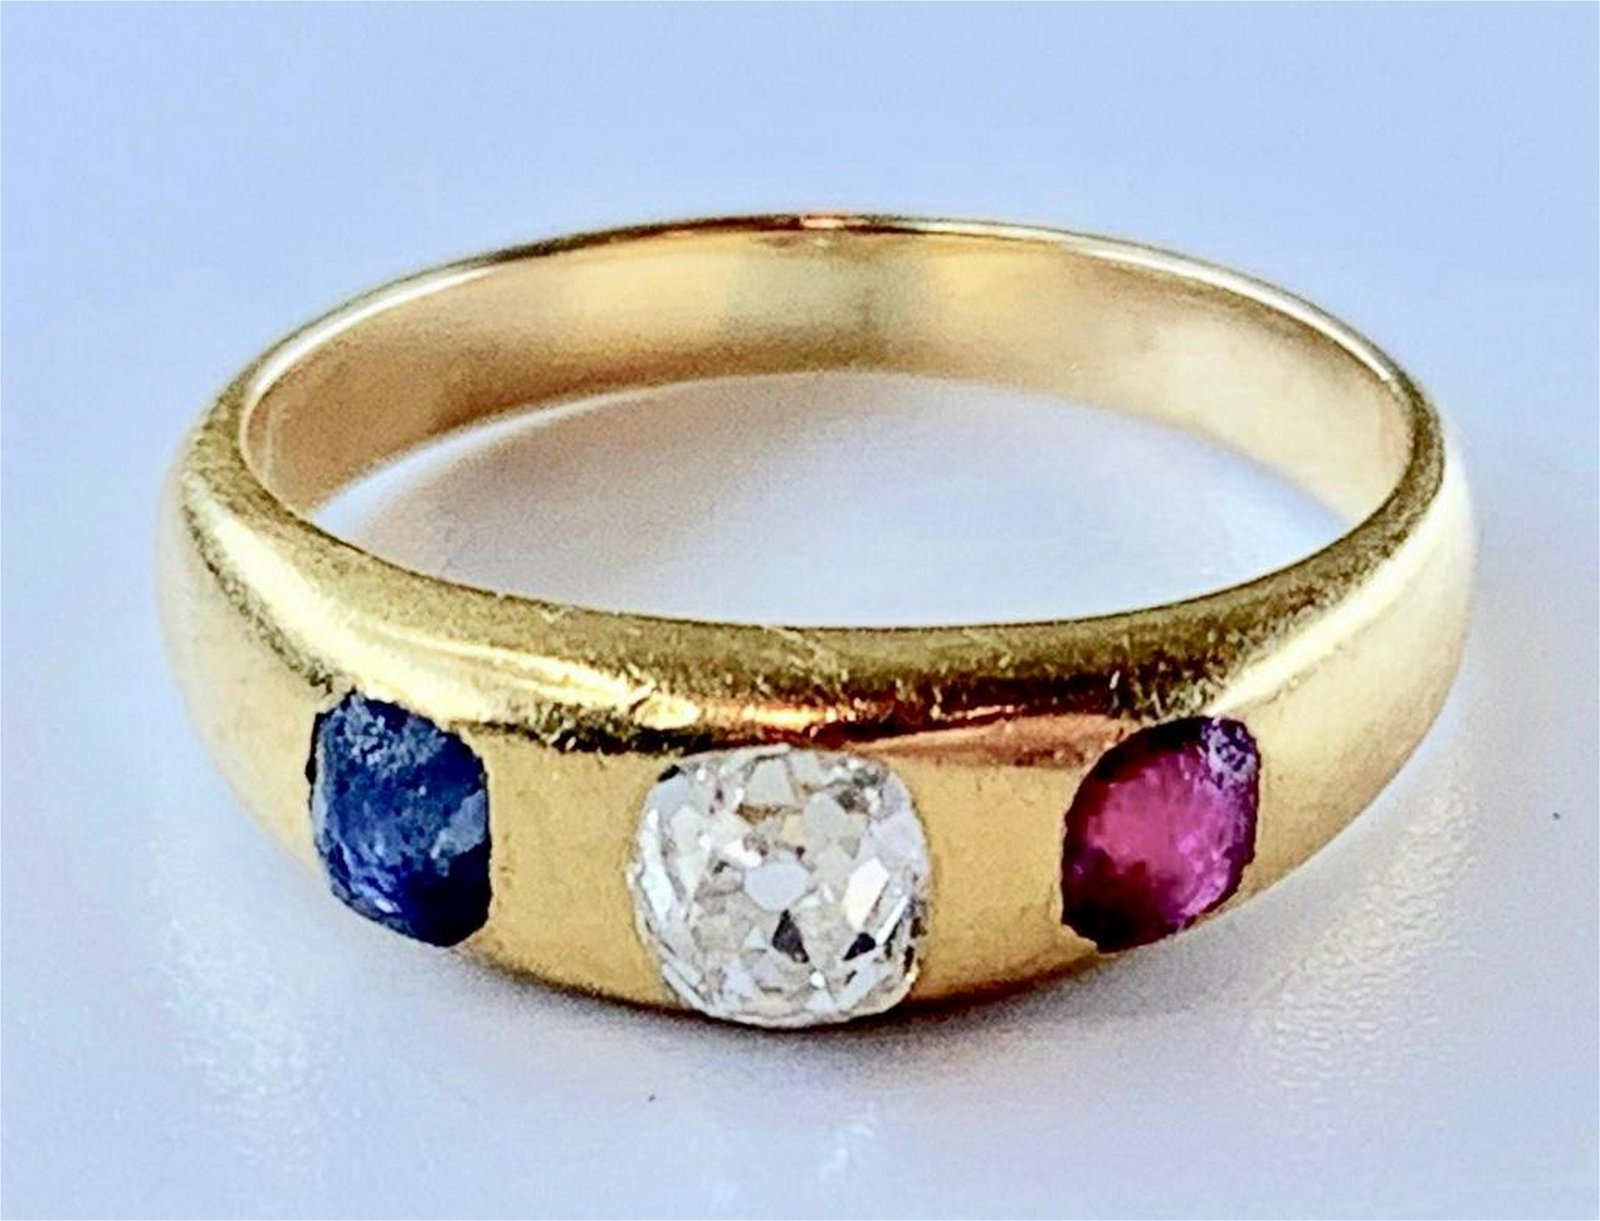 14K Yellow Gold, Diamond, Ruby and Sapphire Ring